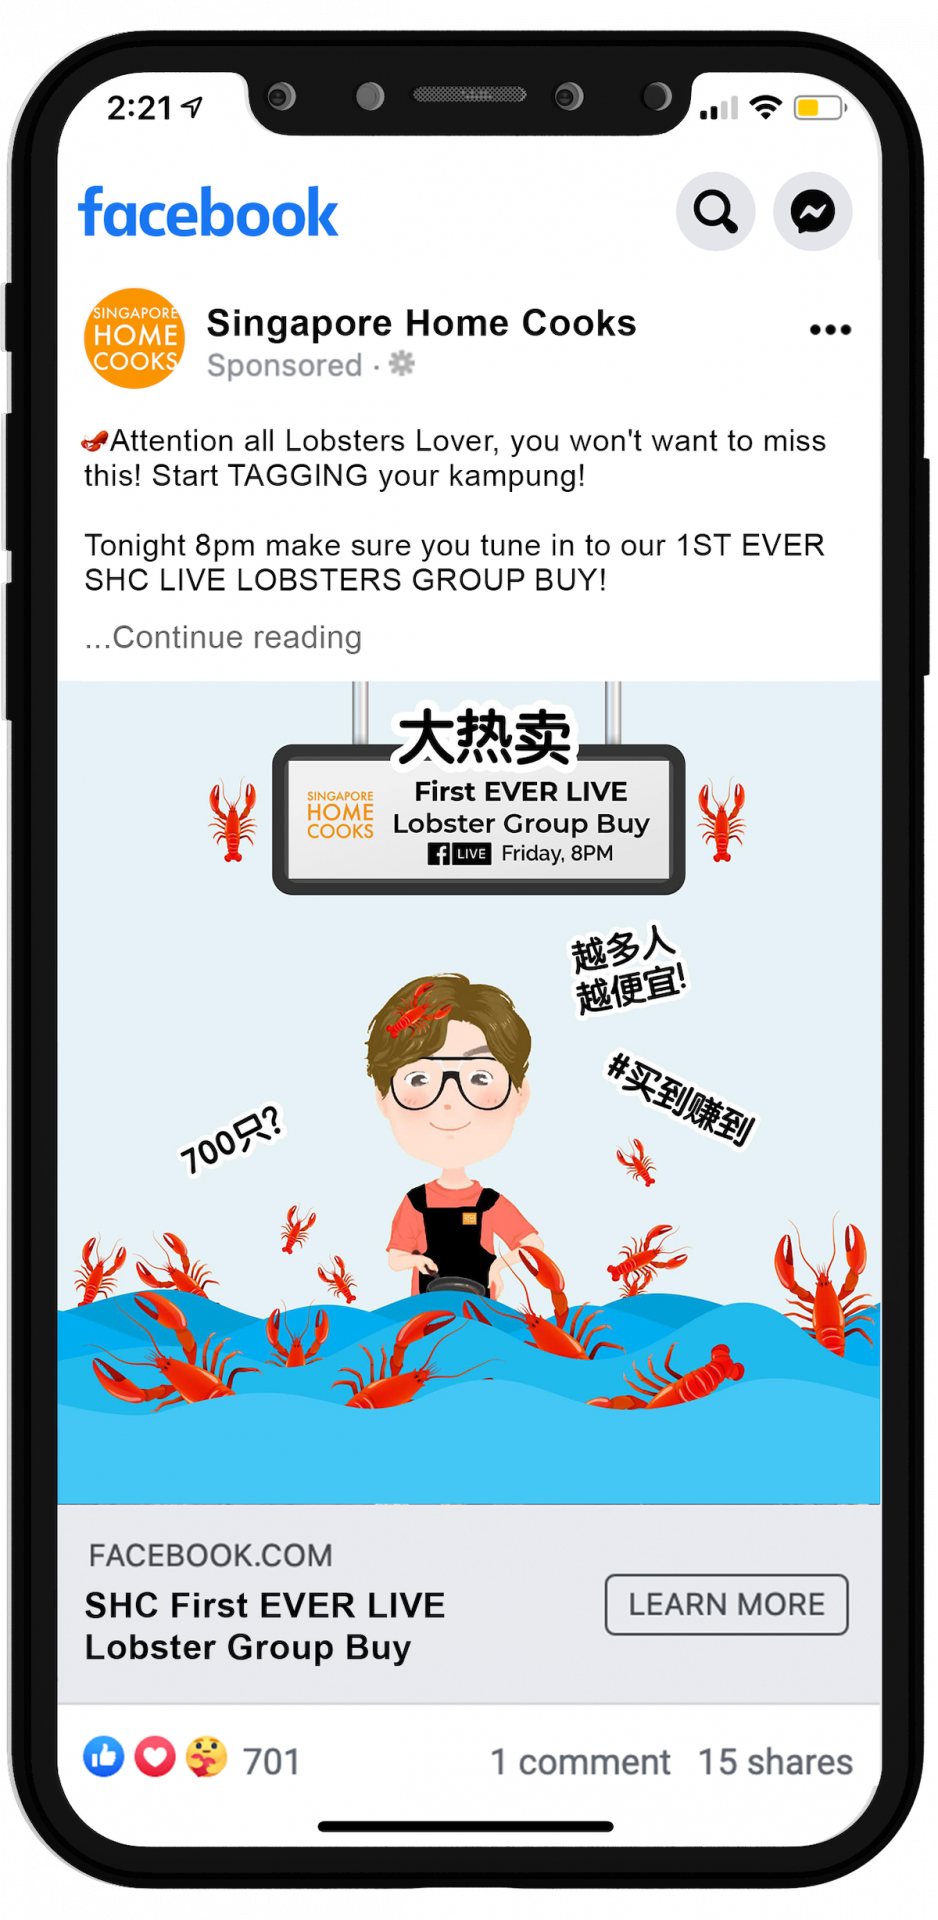 Singapore Home Cooks Live Lobster Show